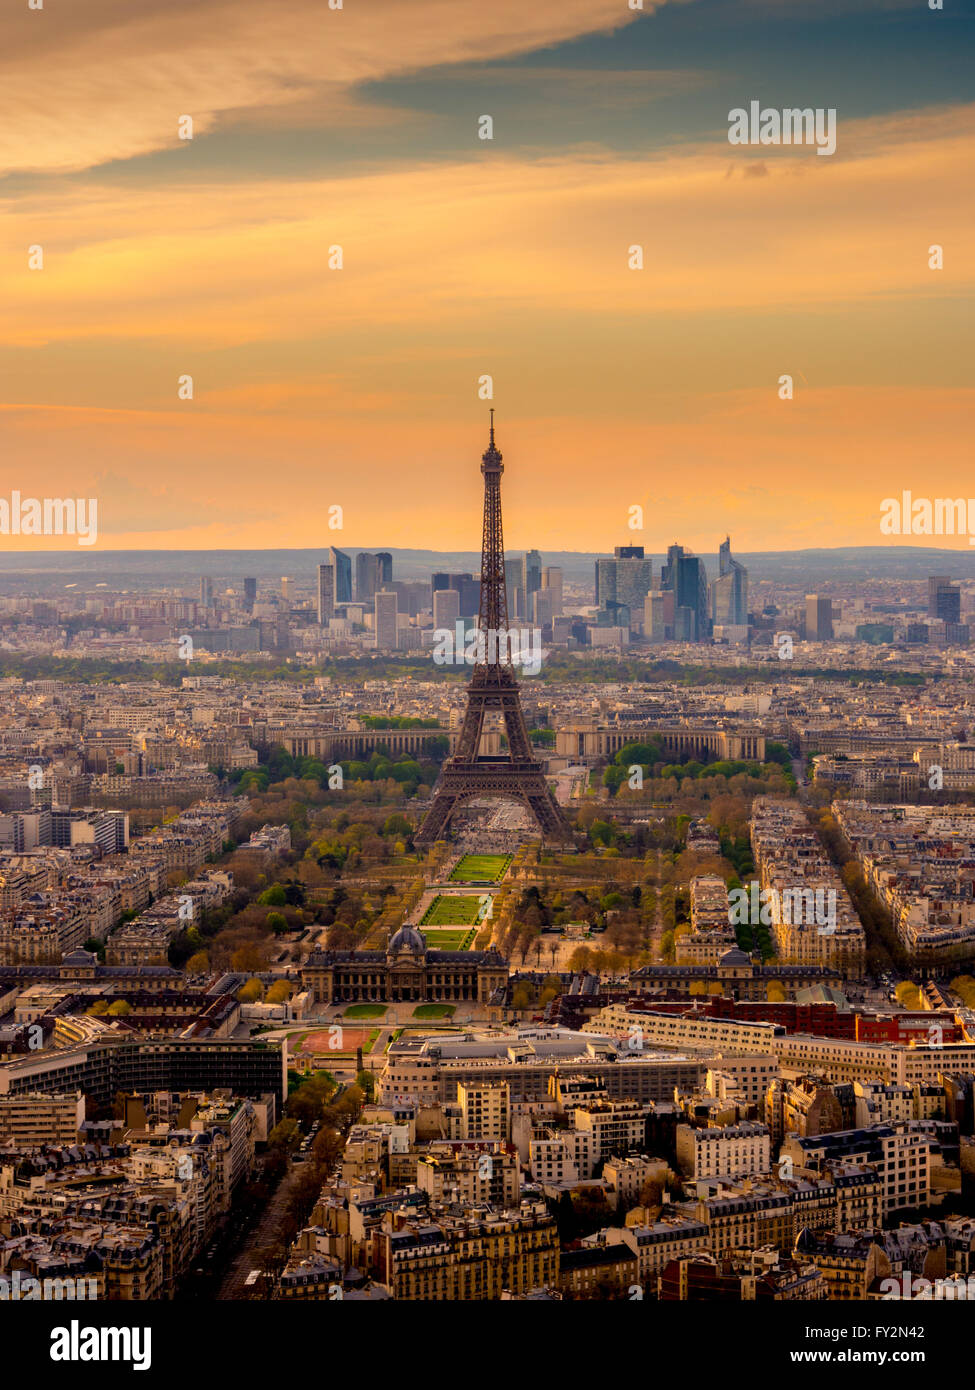 Sunset over Paris with Eiffel Tower, Paris, France - Stock Image